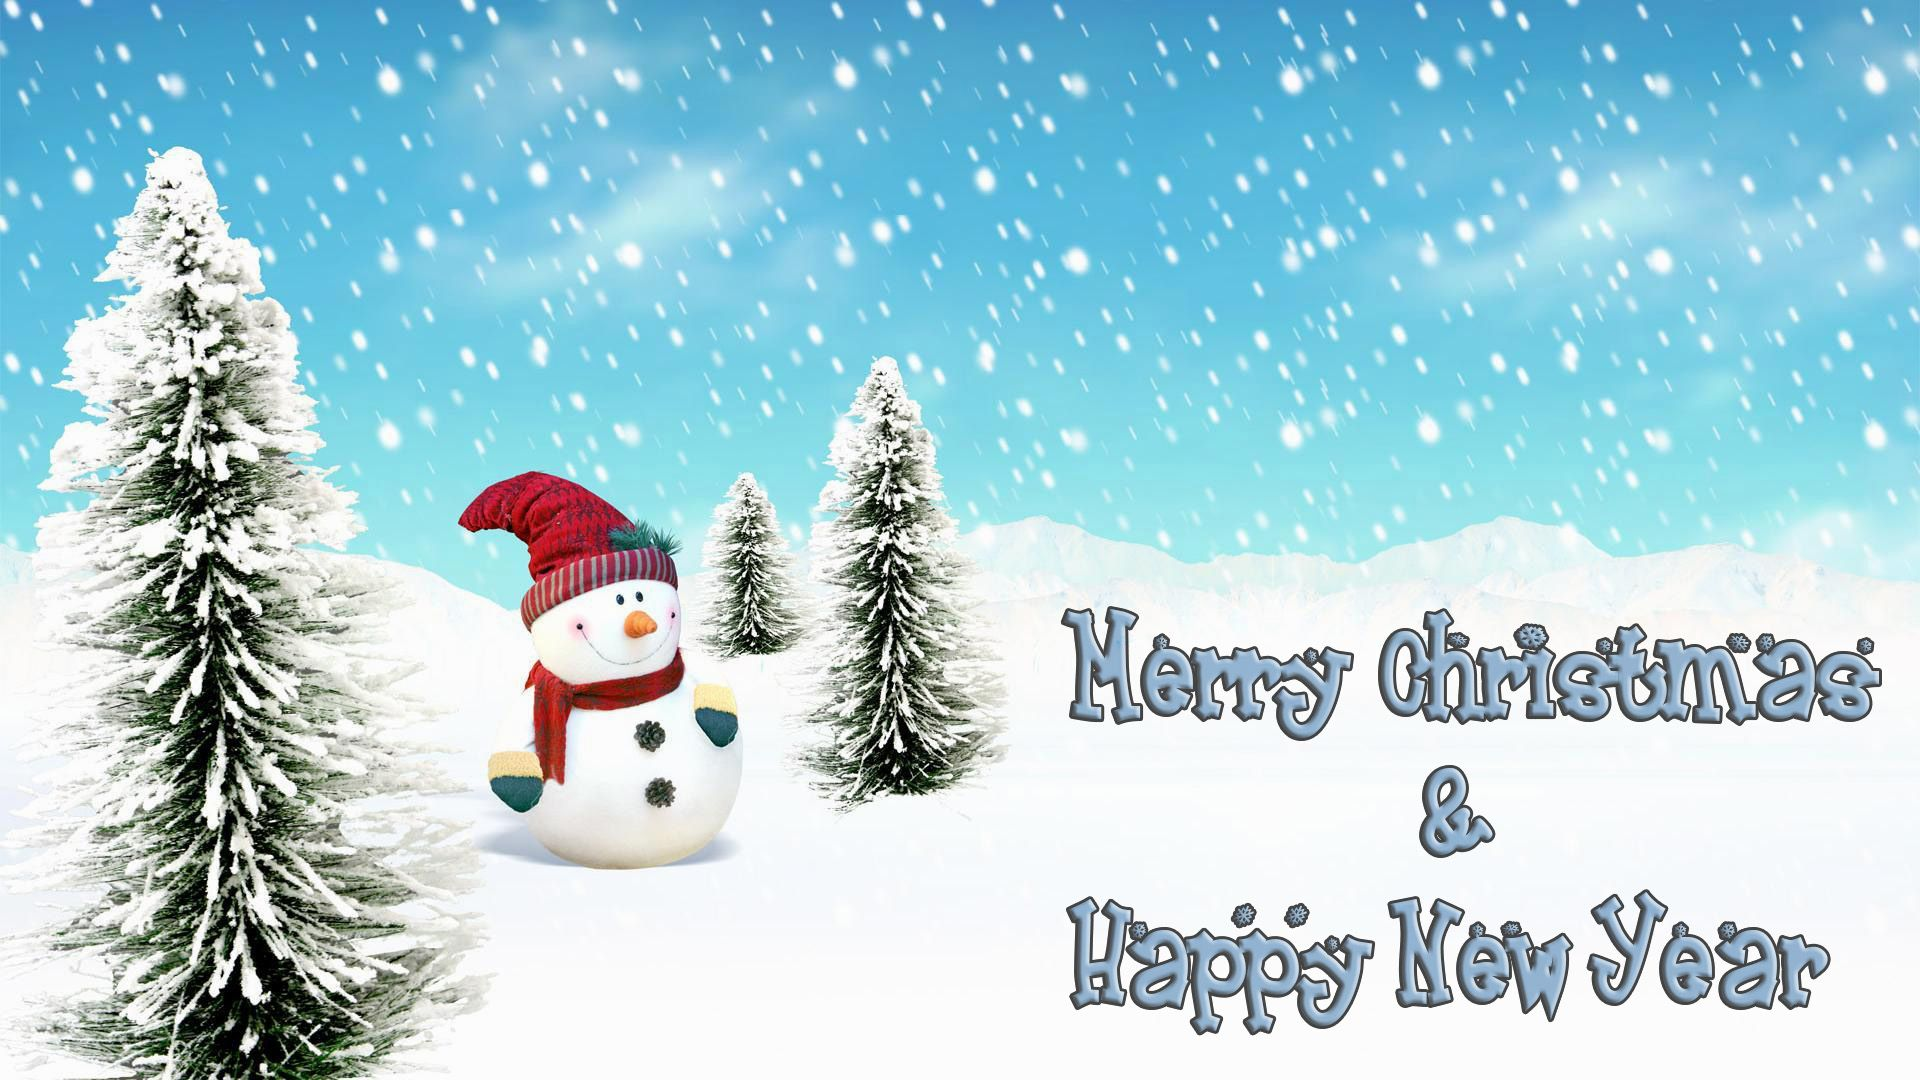 Merry Christmas and Happy New Year Picture Wallpaper 1920x1080